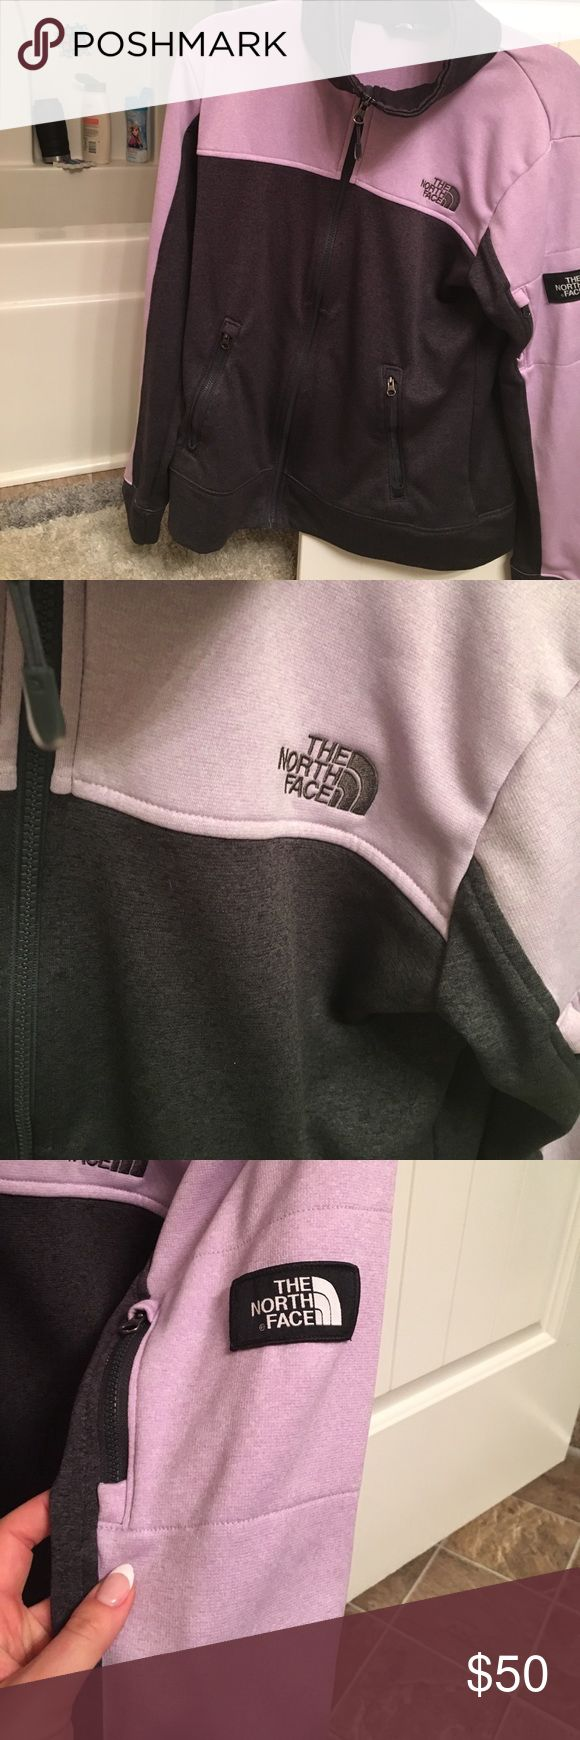 The North Face Mayzie Mays Full Zip Fleece Jacket Brand new never worn. Tags are not attached but I still have them. Super comfortable awesome jacket The North Face Women's Mayzie Mays Full Zip Fleece Jacket - discontinued COLOR: Tnf Dark Grey Heather/Lupine  FEATURES:  Full zip fleece jacket Slim fit Oversized collar Side zip pockets Small zippered pocket on left arm Special Edition logo patch on left arm Brand: The North Face Country of Origin: Imported Fabric Content: 100% polyester…